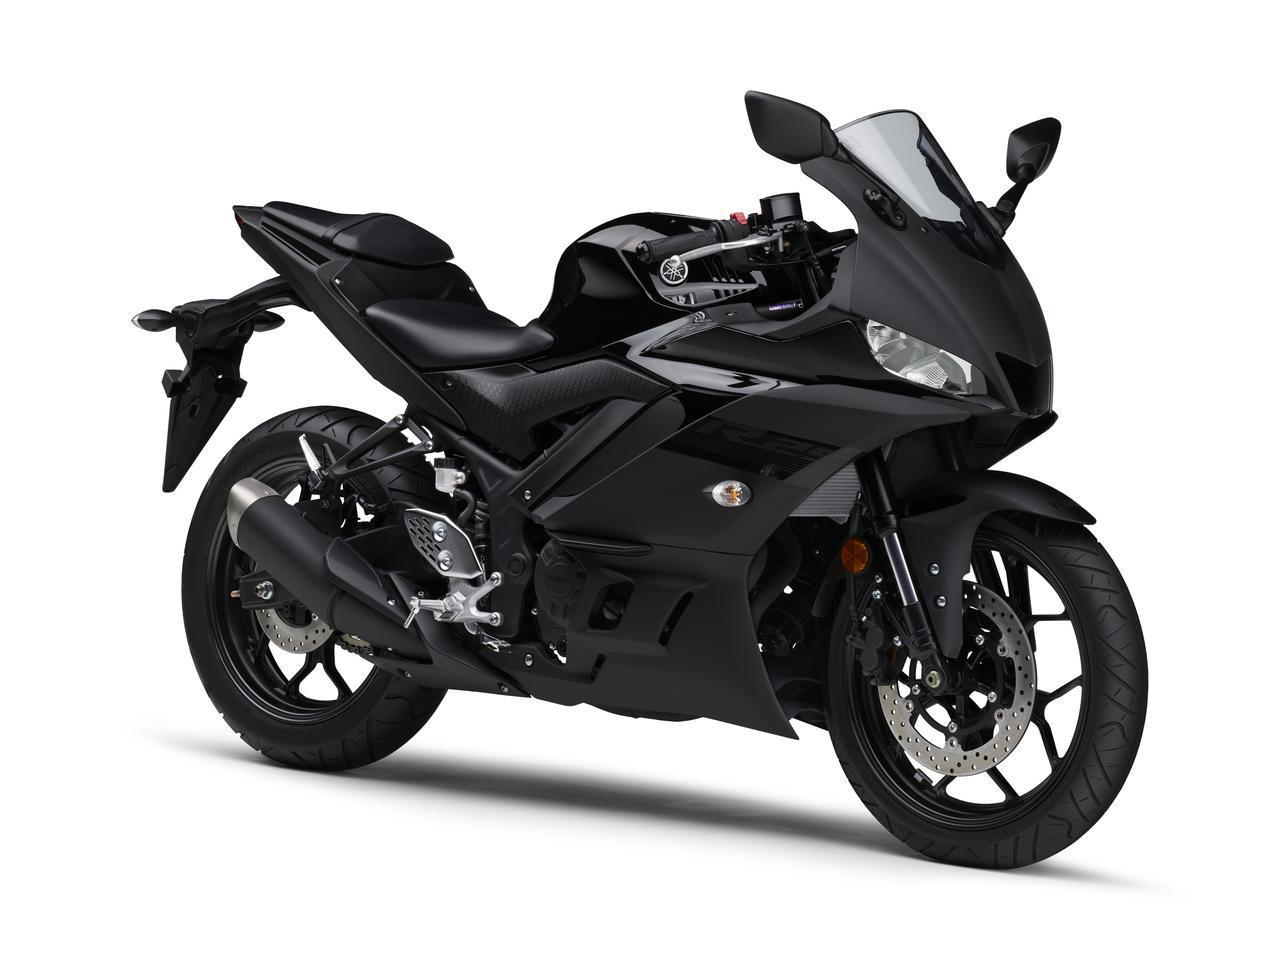 Images : 5番目の画像 - ヤマハ YZF-R25の写真をまとめて見る! - LAWRENCE - Motorcycle x Cars + α = Your Life.